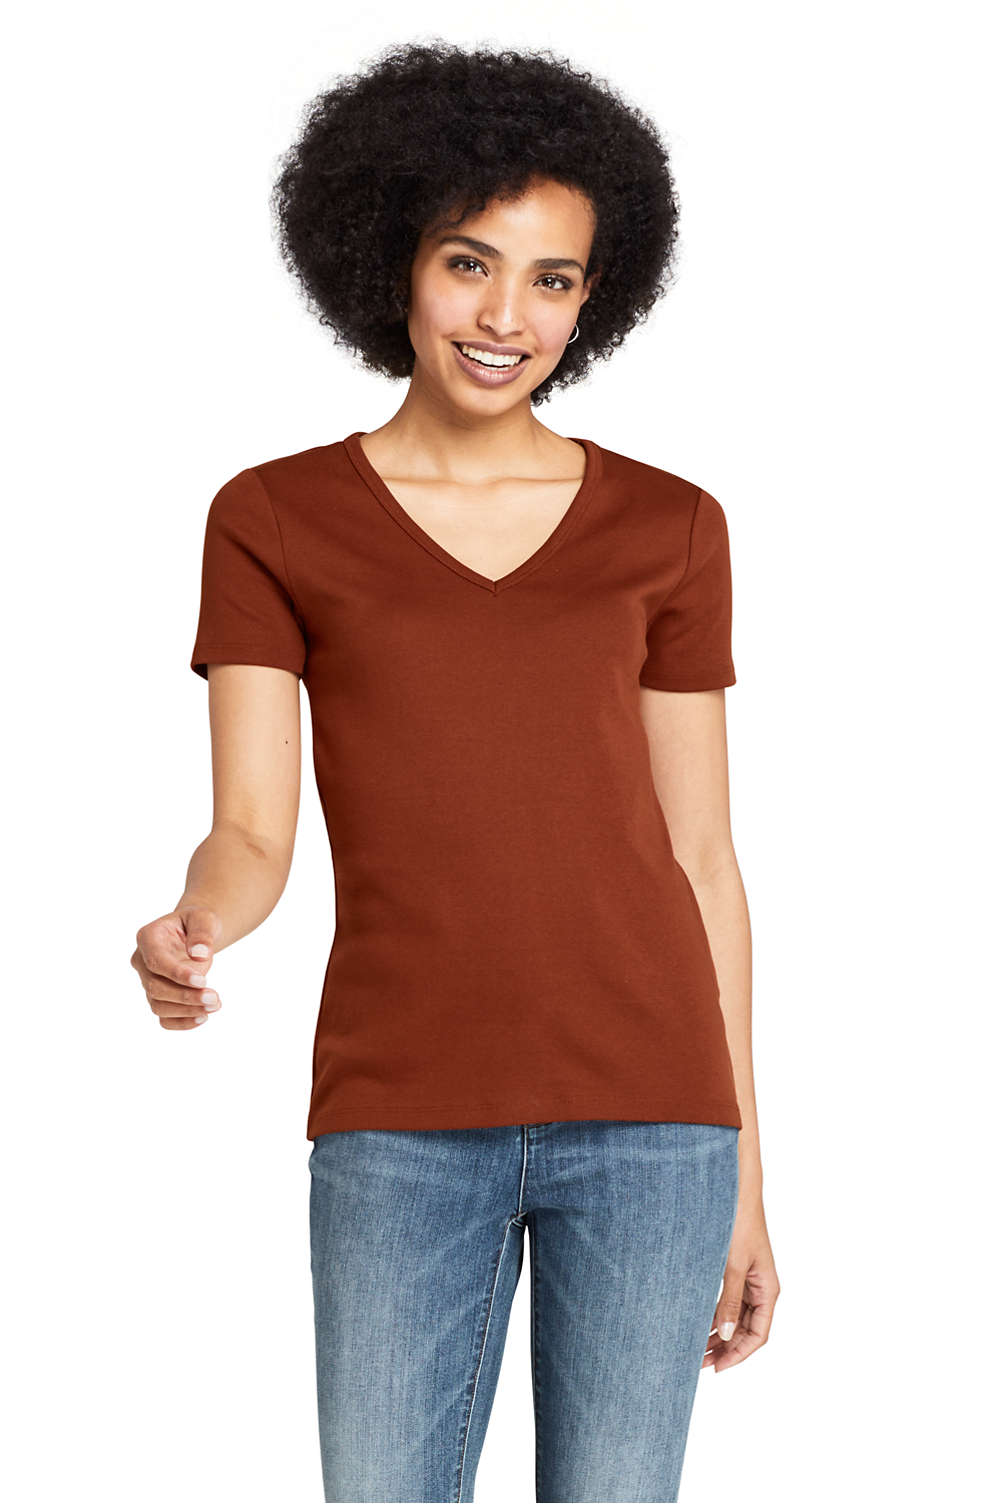 b399fbac7 Women's All Cotton Short Sleeve V-Neck T-Shirt from Lands' End